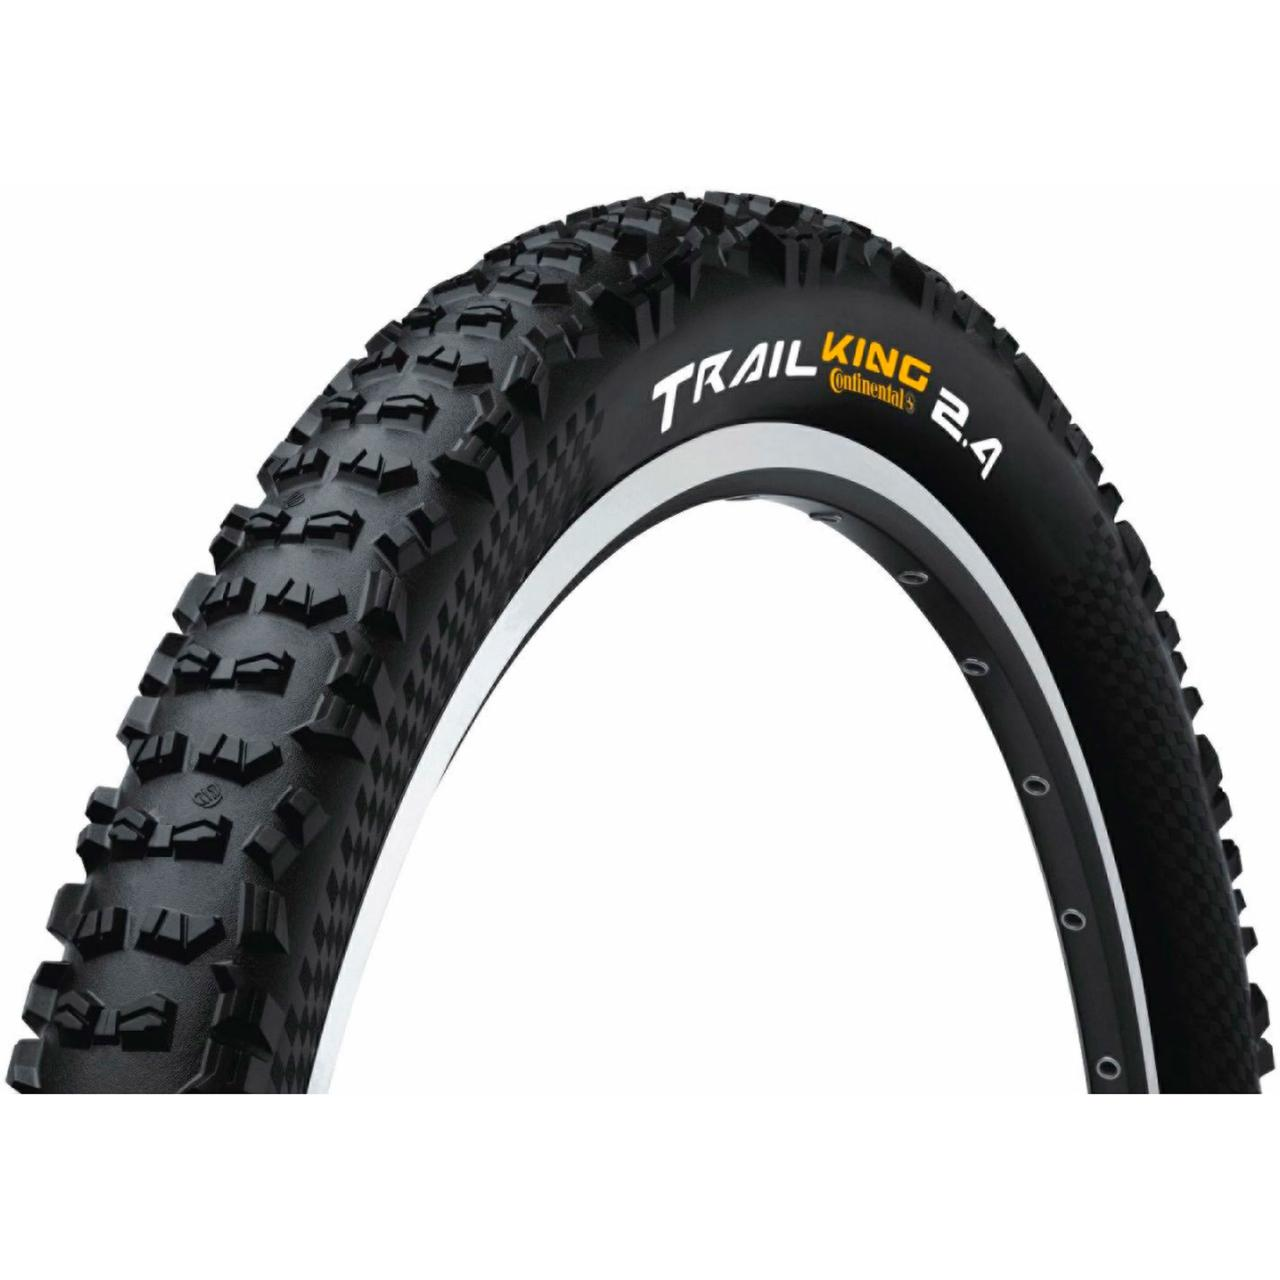 "Покрышка Continental Trail King 2.4, 26""x2.40, 60-559, Foldable, BlackChili, ProTection Apex, Skin, 825гр."